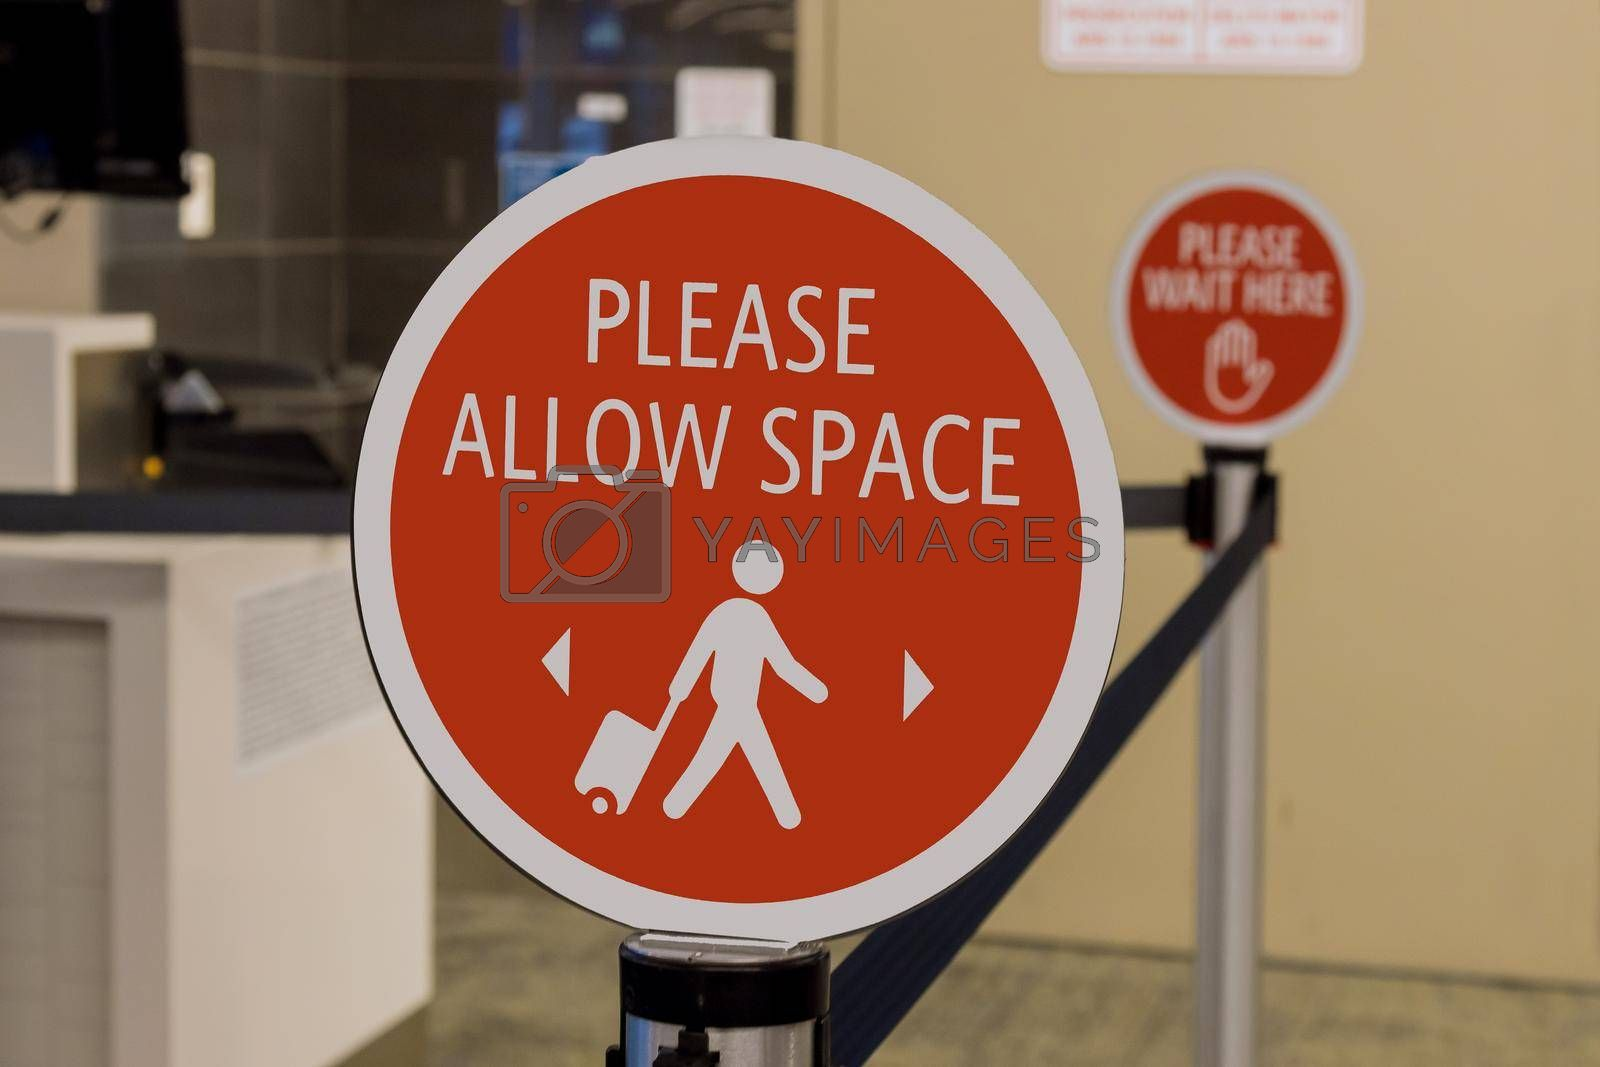 Preventive signs for COVID-19 pandemic before entering a airport terminal on signs in the Please Allow Space airport lounge